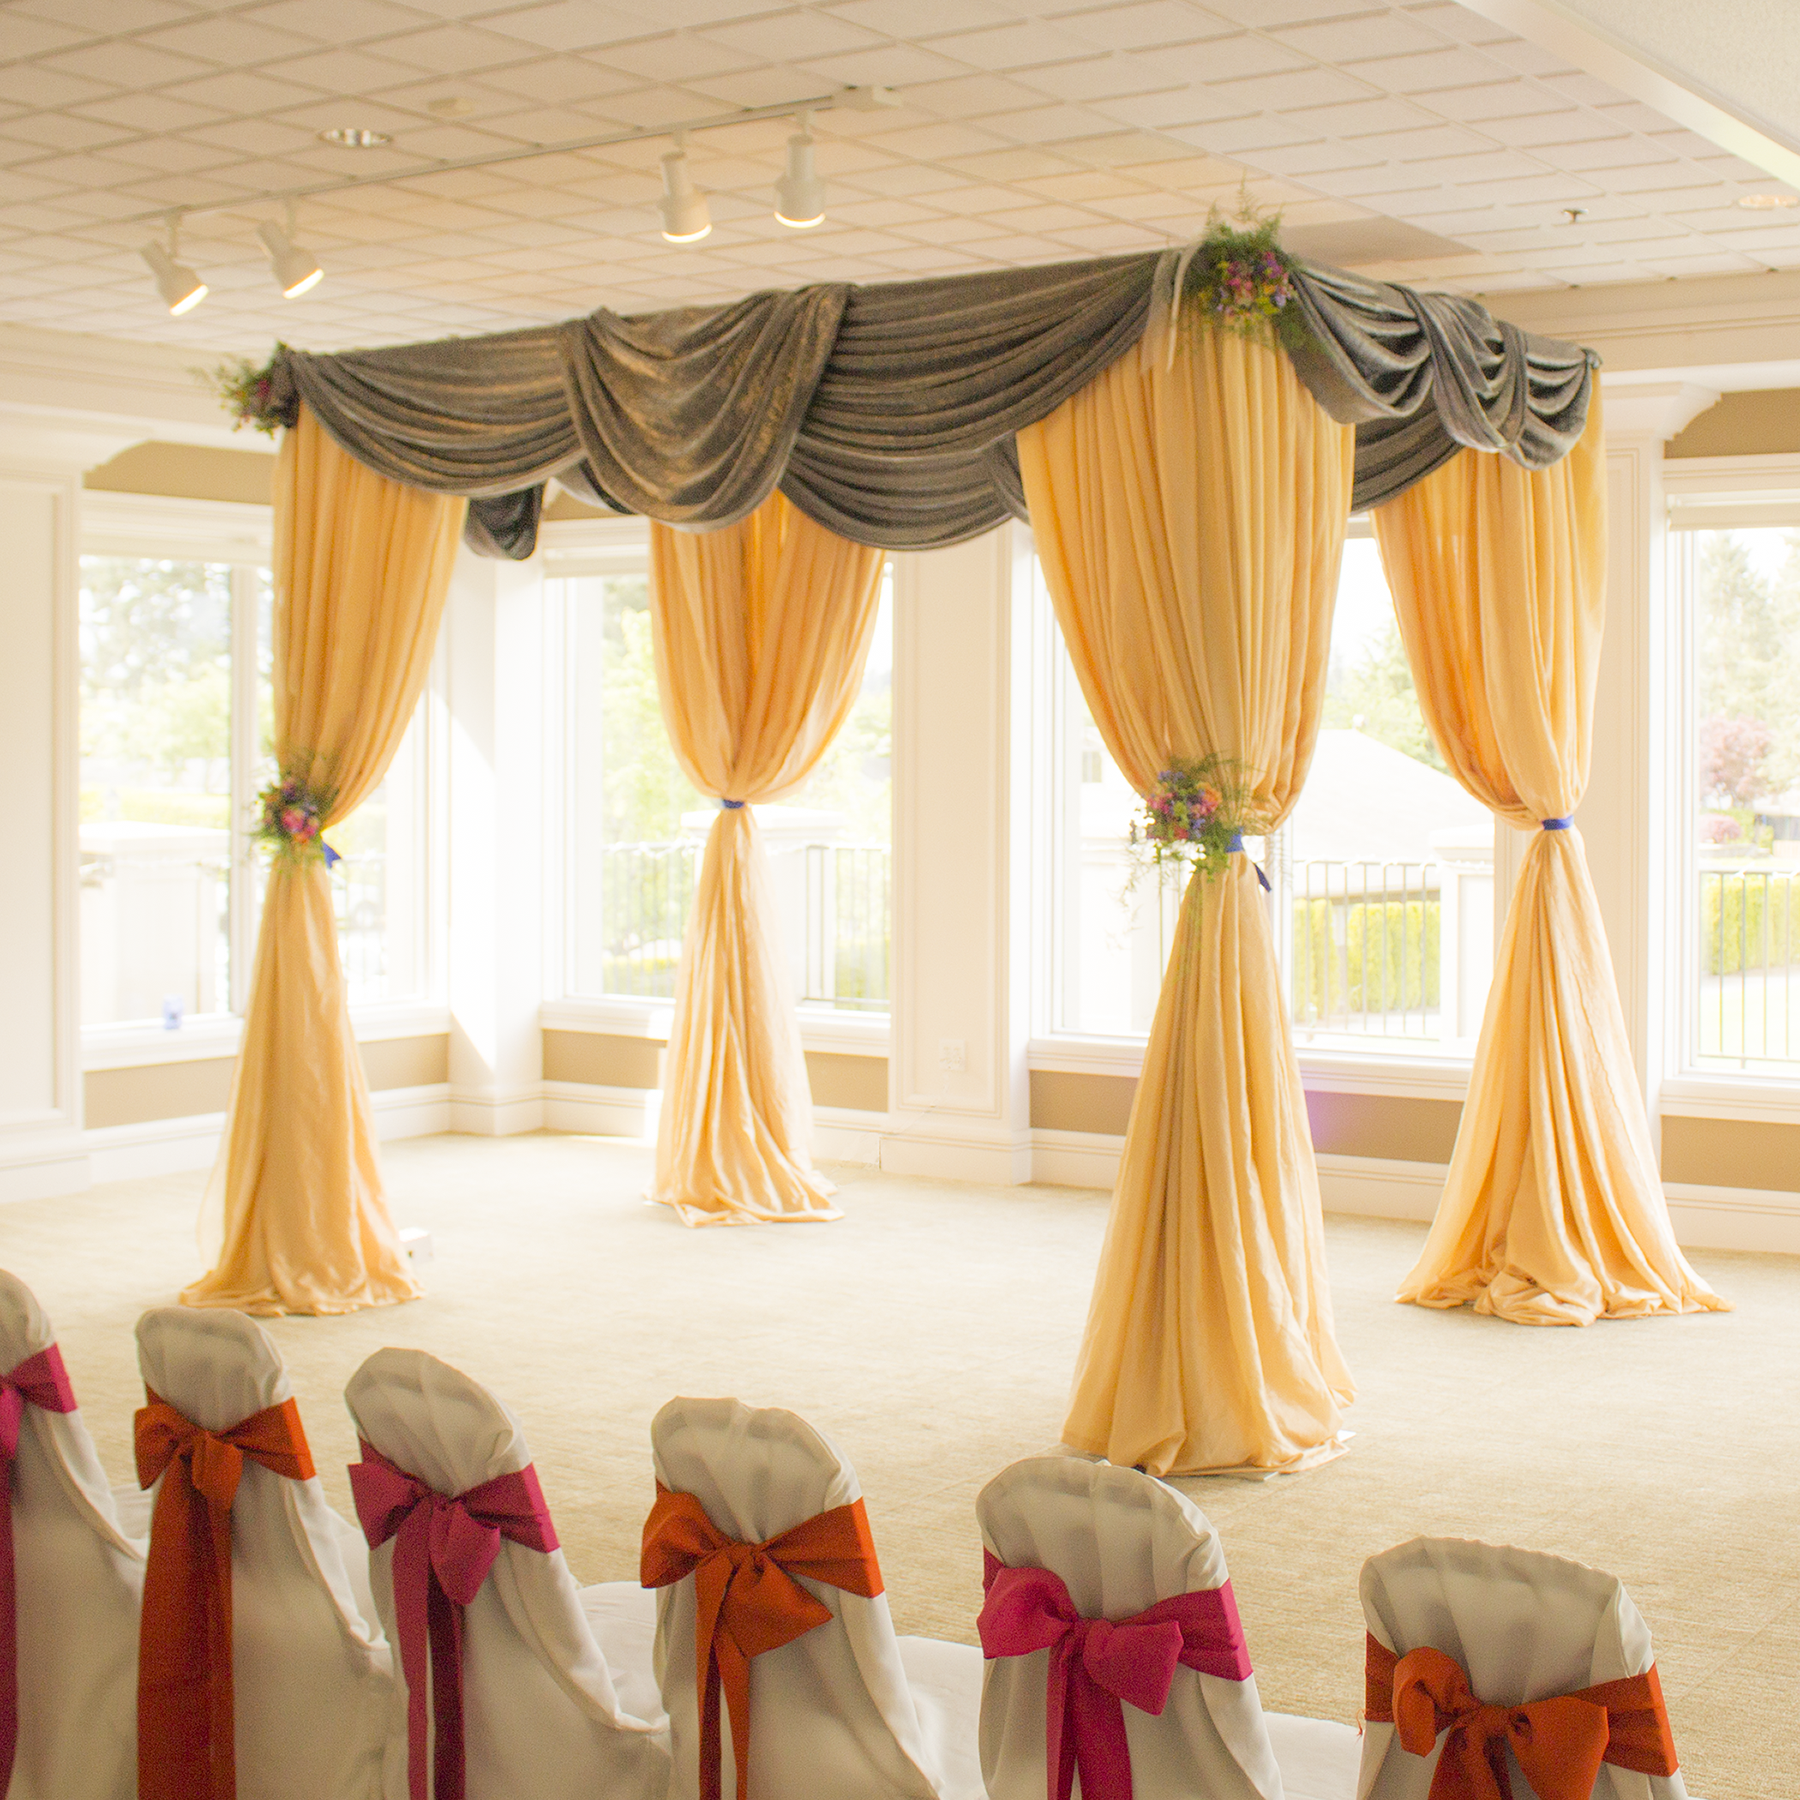 Draping Curtains Bowerbird Events Portland S Premier Pipe And Drape Rental Provider